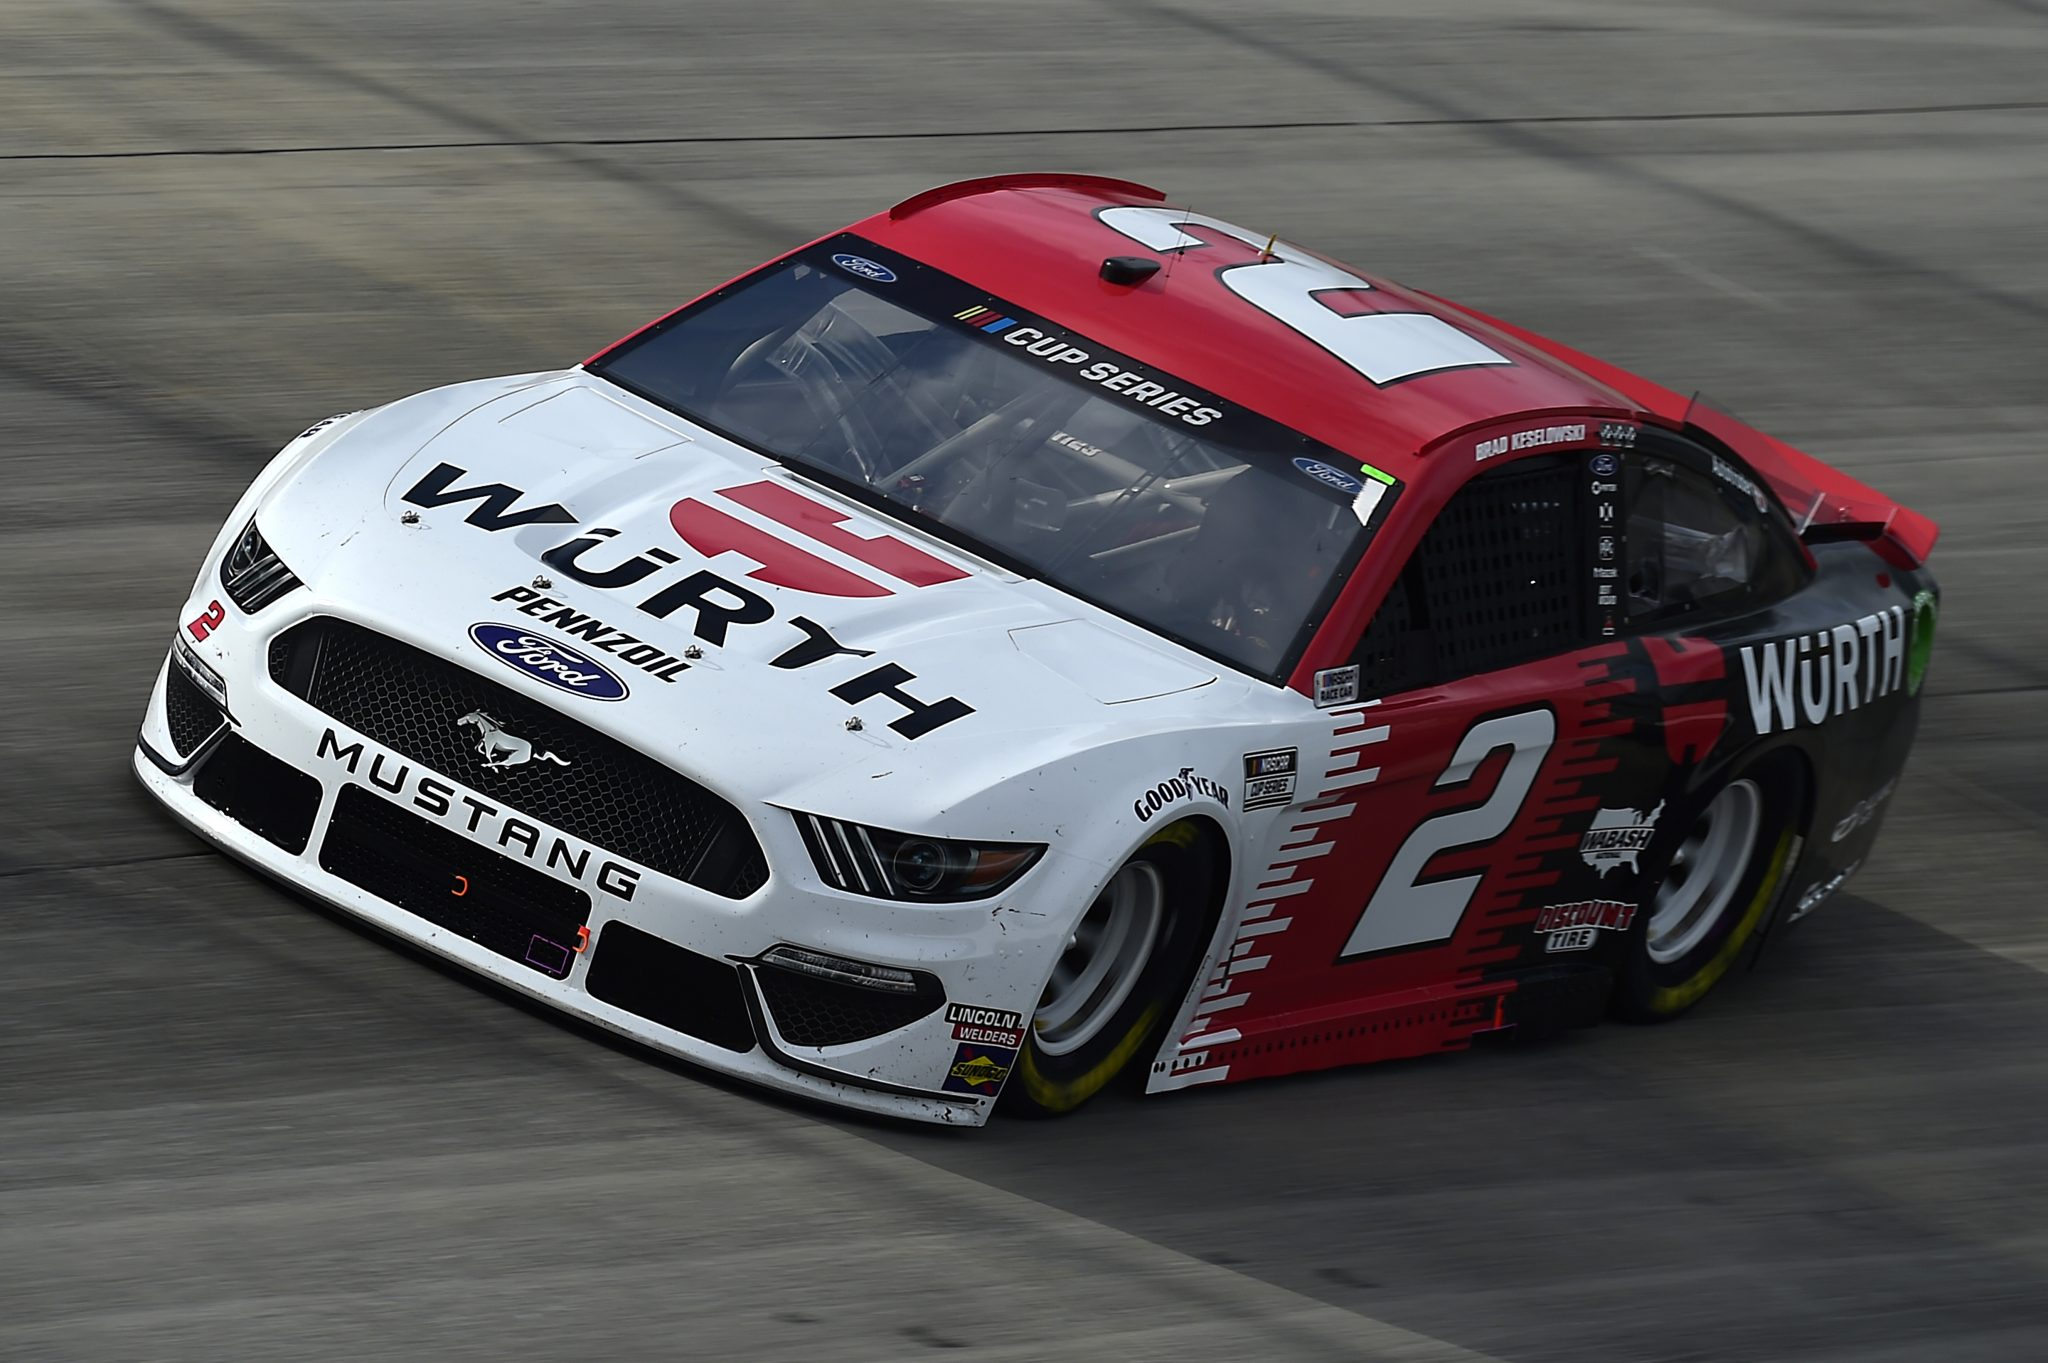 DOVER, DELAWARE - AUGUST 22: Brad Keselowski, driver of the #2 Wurth Ford, drives during the NASCAR Cup Series Drydene 311 at Dover International Speedway on August 22, 2020 in Dover, Delaware. (Photo by Jared C. Tilton/Getty Images) | Getty Images